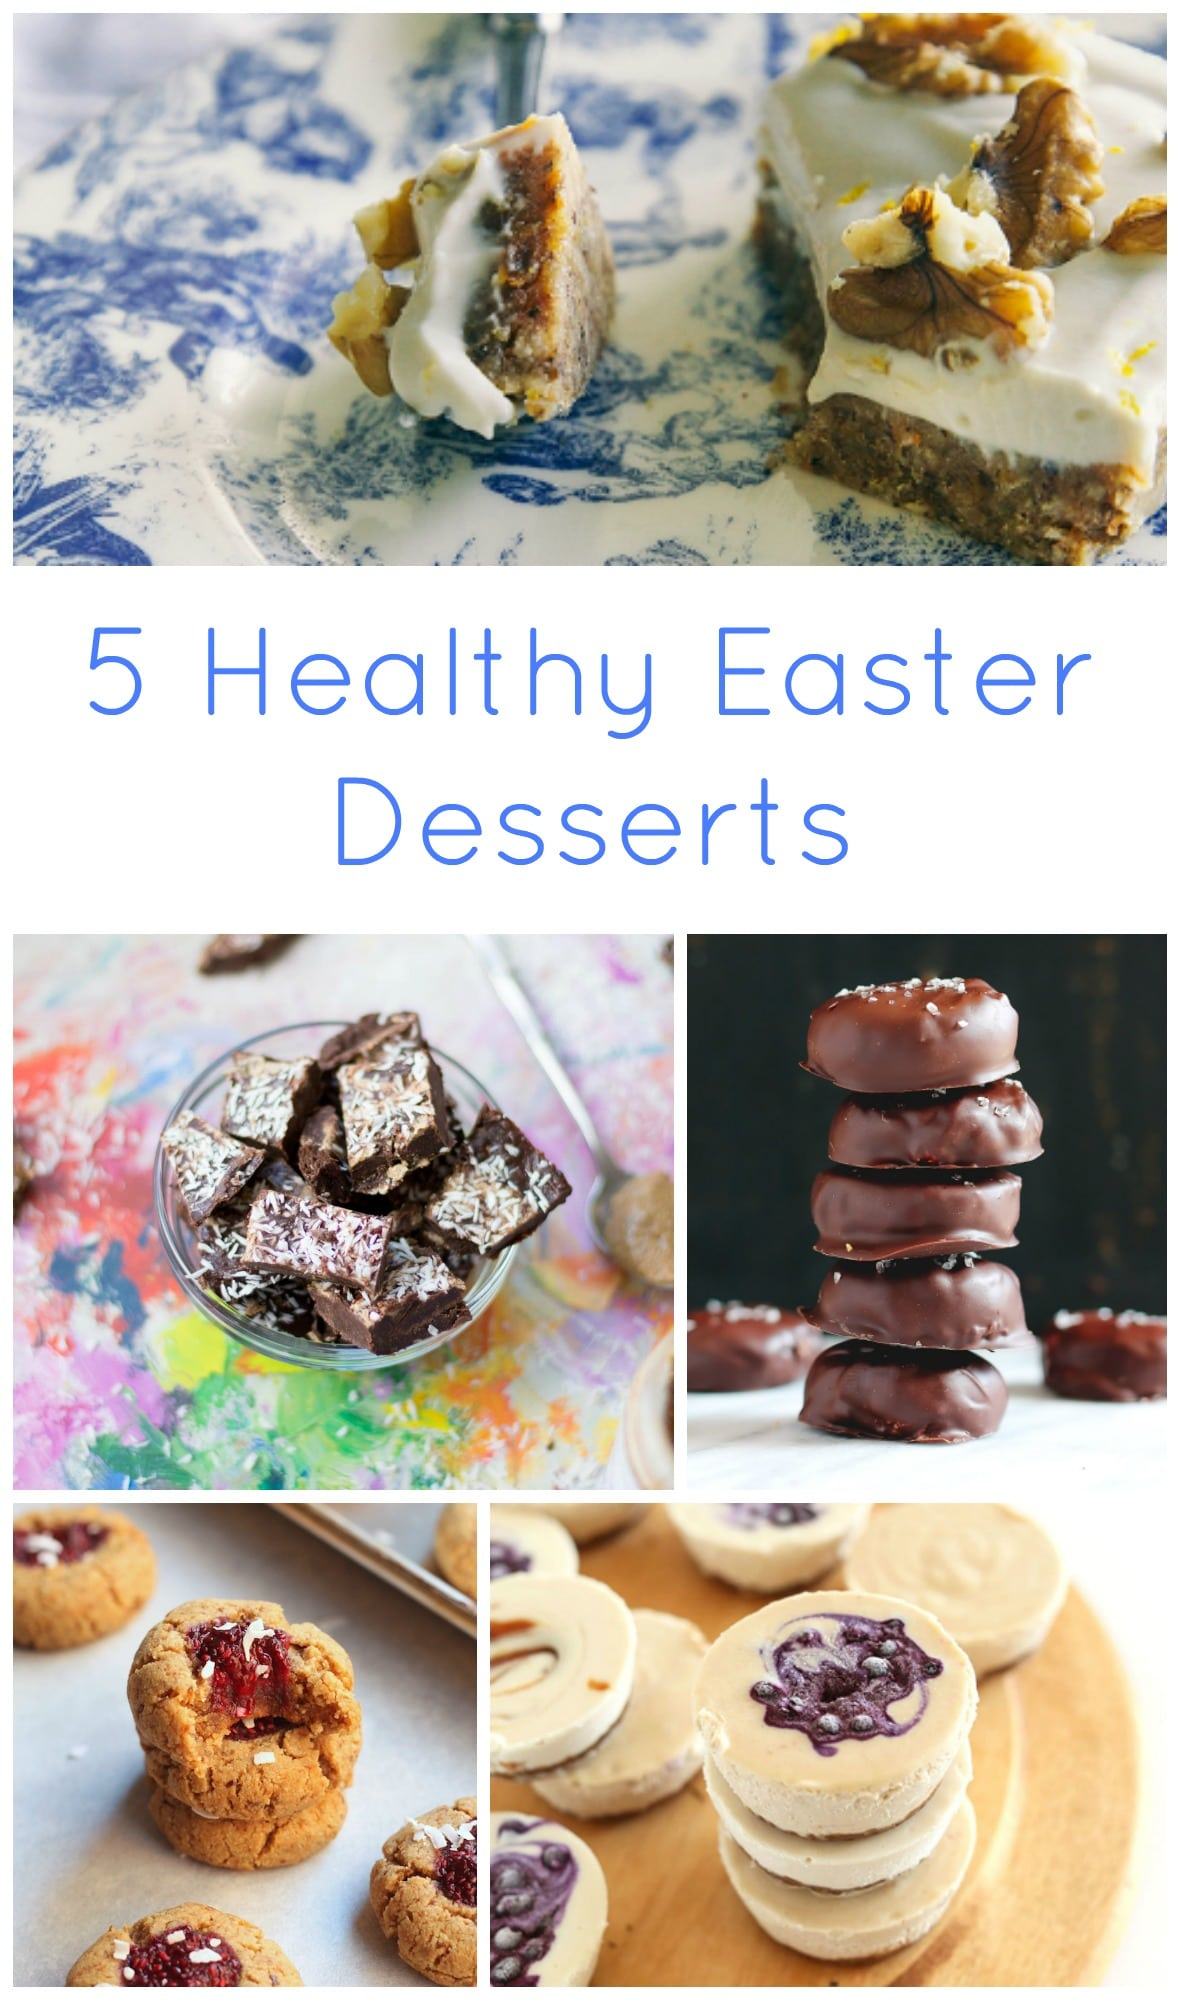 5 Healthy Easter Desserts - Lake Shore Lady